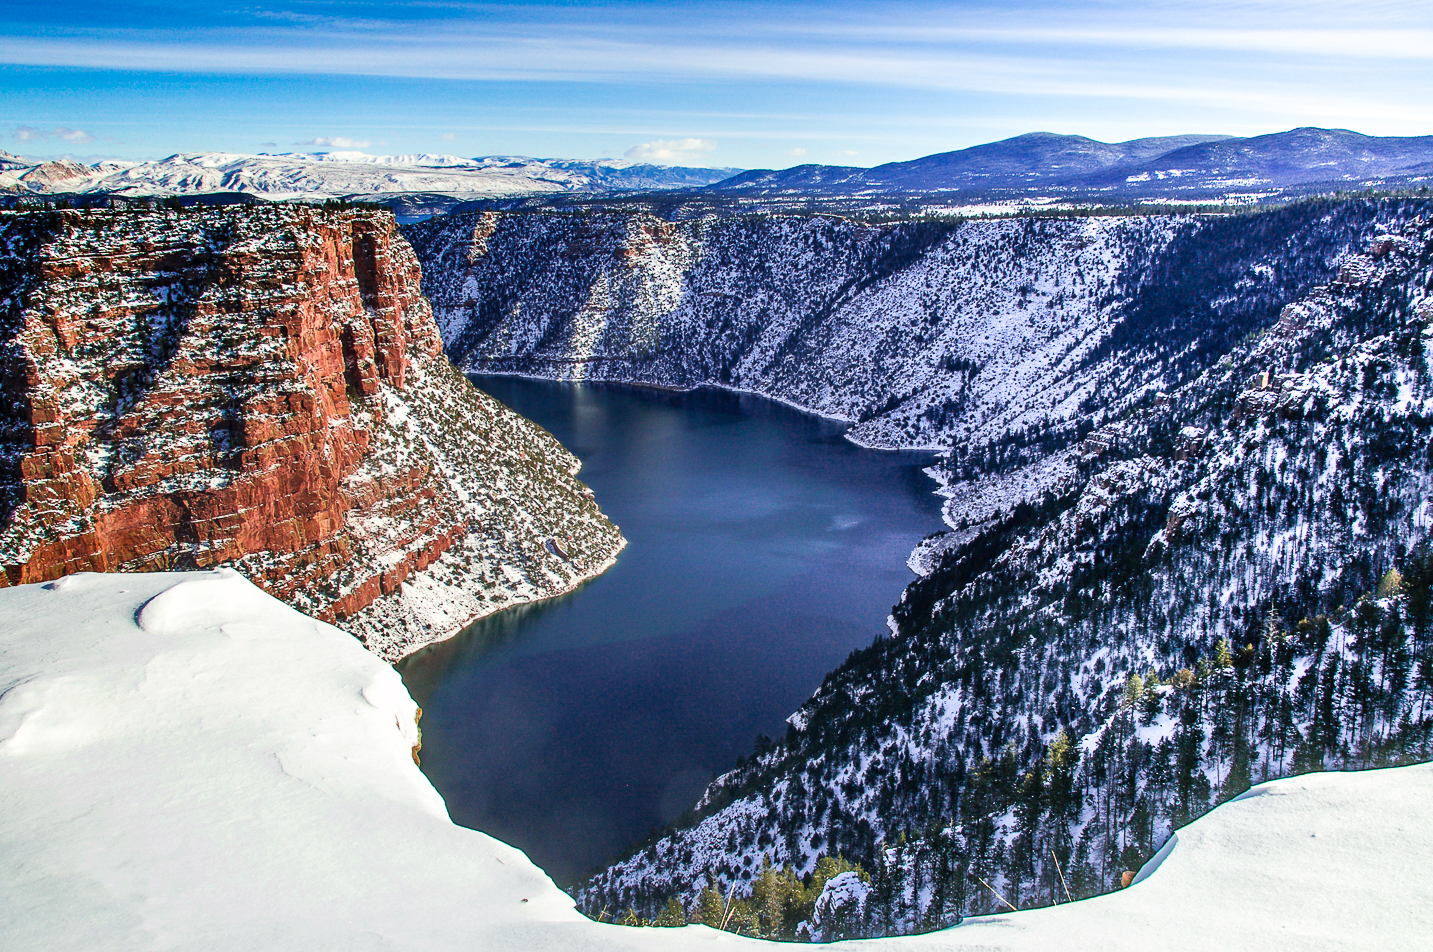 Red Canyon Overlook winter at Flaming Gorge